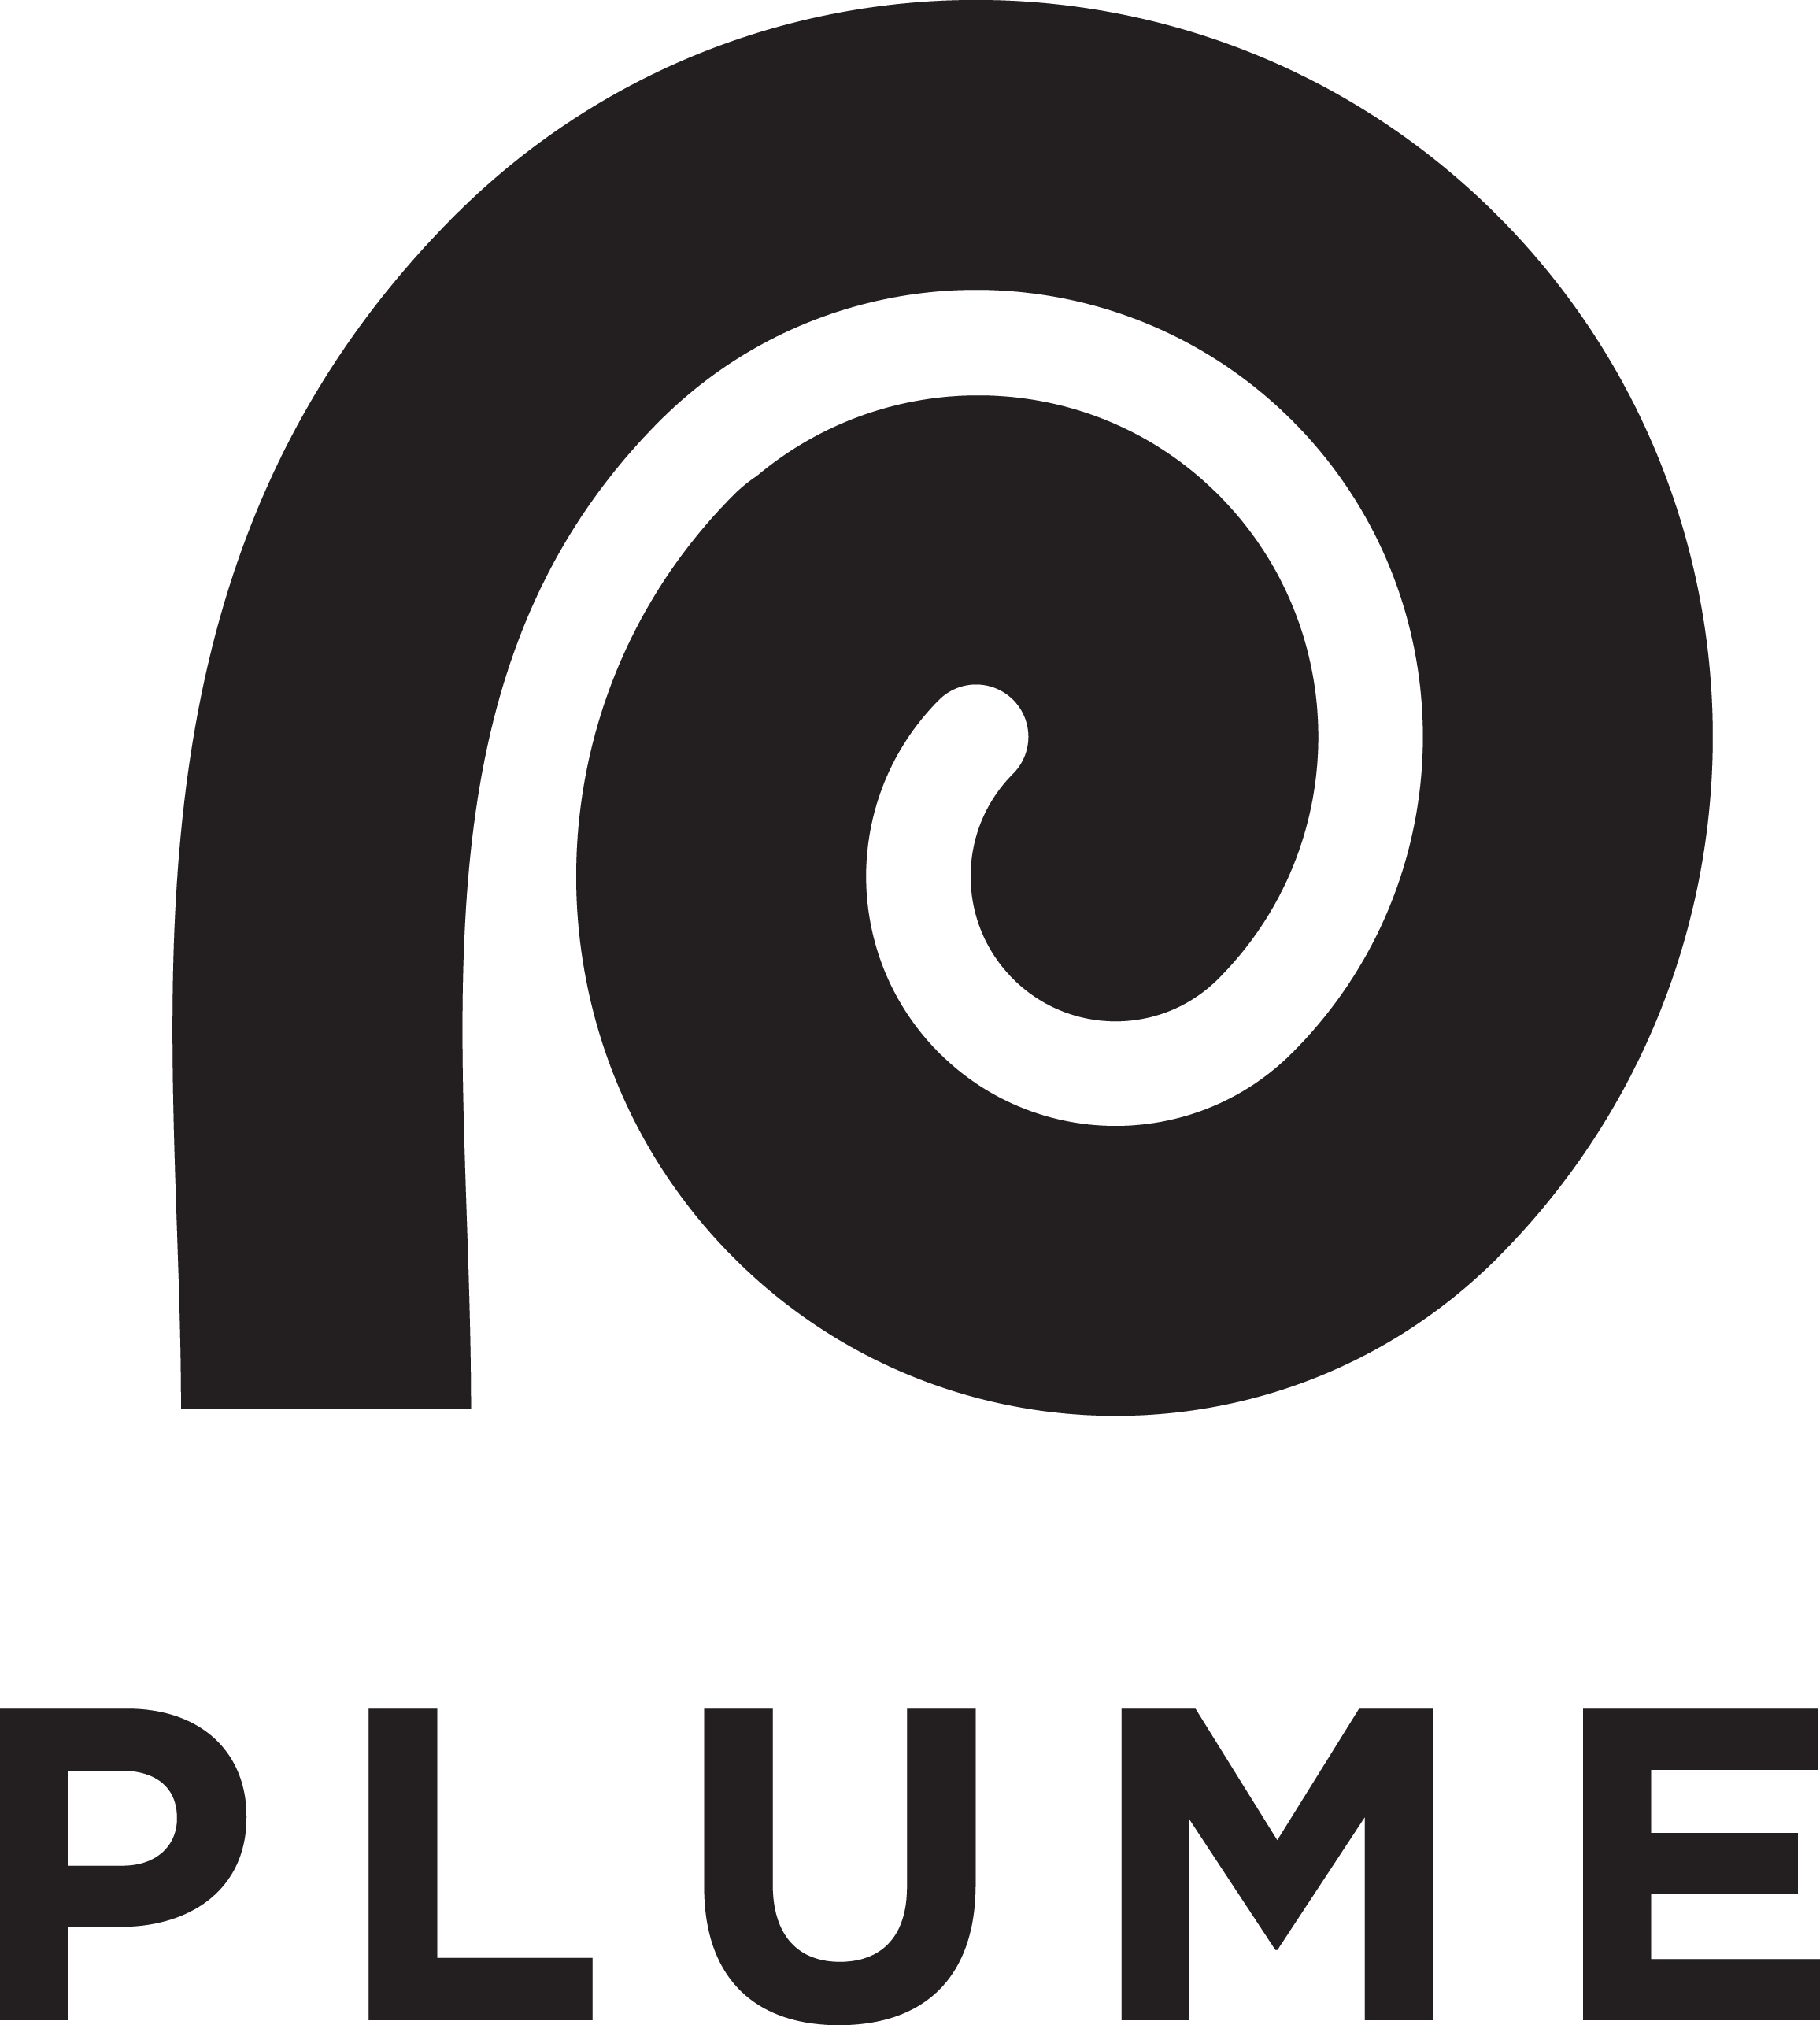 Penguin books logo png. Plume usa overview